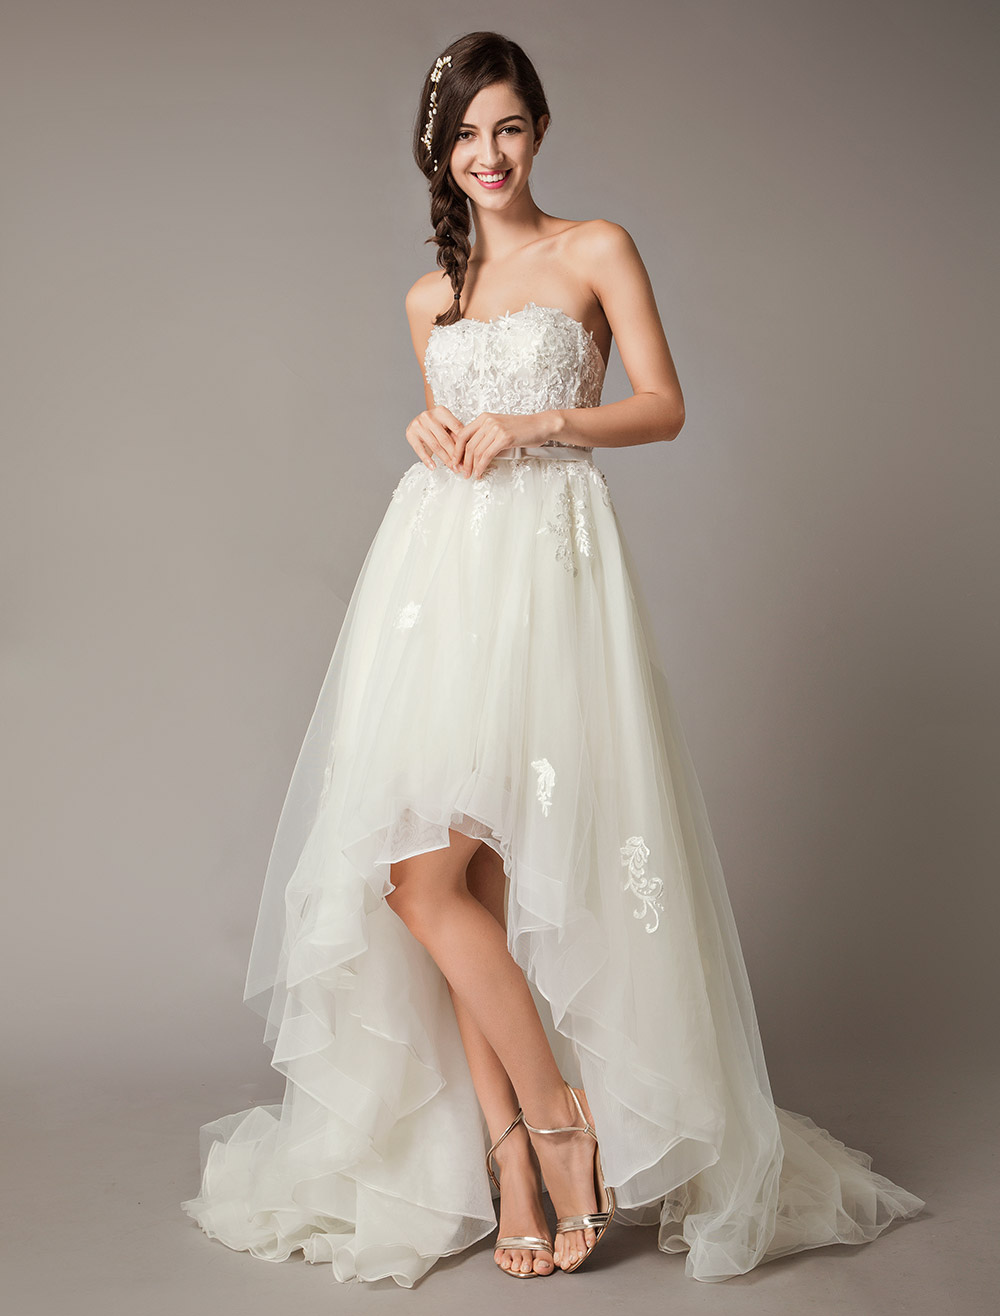 High Low Wedding Dresses Strapless Lace Tulle Bow Sash Asymmetrical Summer Beach Bridal Dress